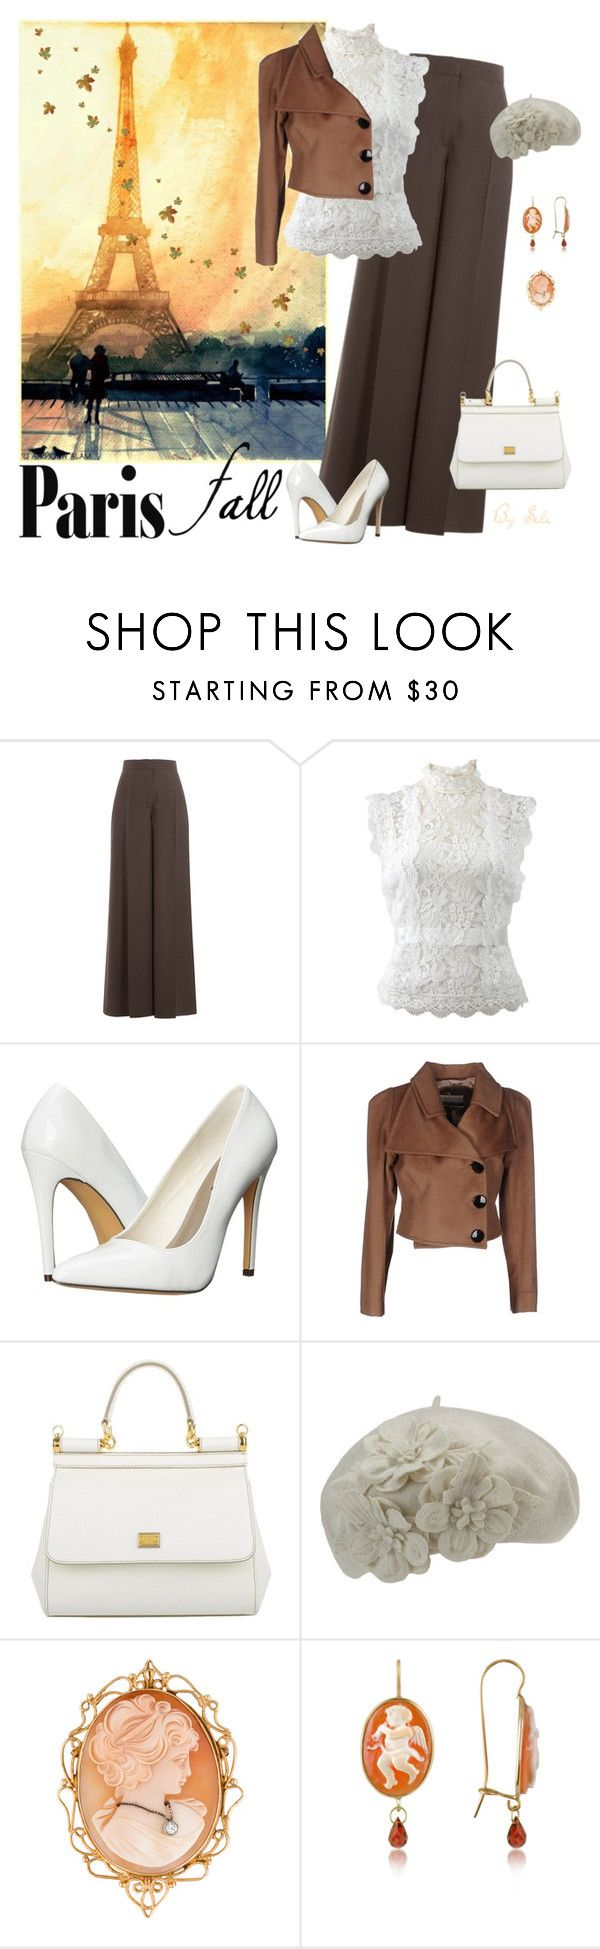 """I Love Paris In the Fall - French Elegance"" by selene-cinzia ❤ liked on Polyvore featuring Valentino, Oscar de la Renta, Michael Antonio, Bencivenga Couture, Dolce&Gabbana, Betmar, Del Gatto and fallgetaway"